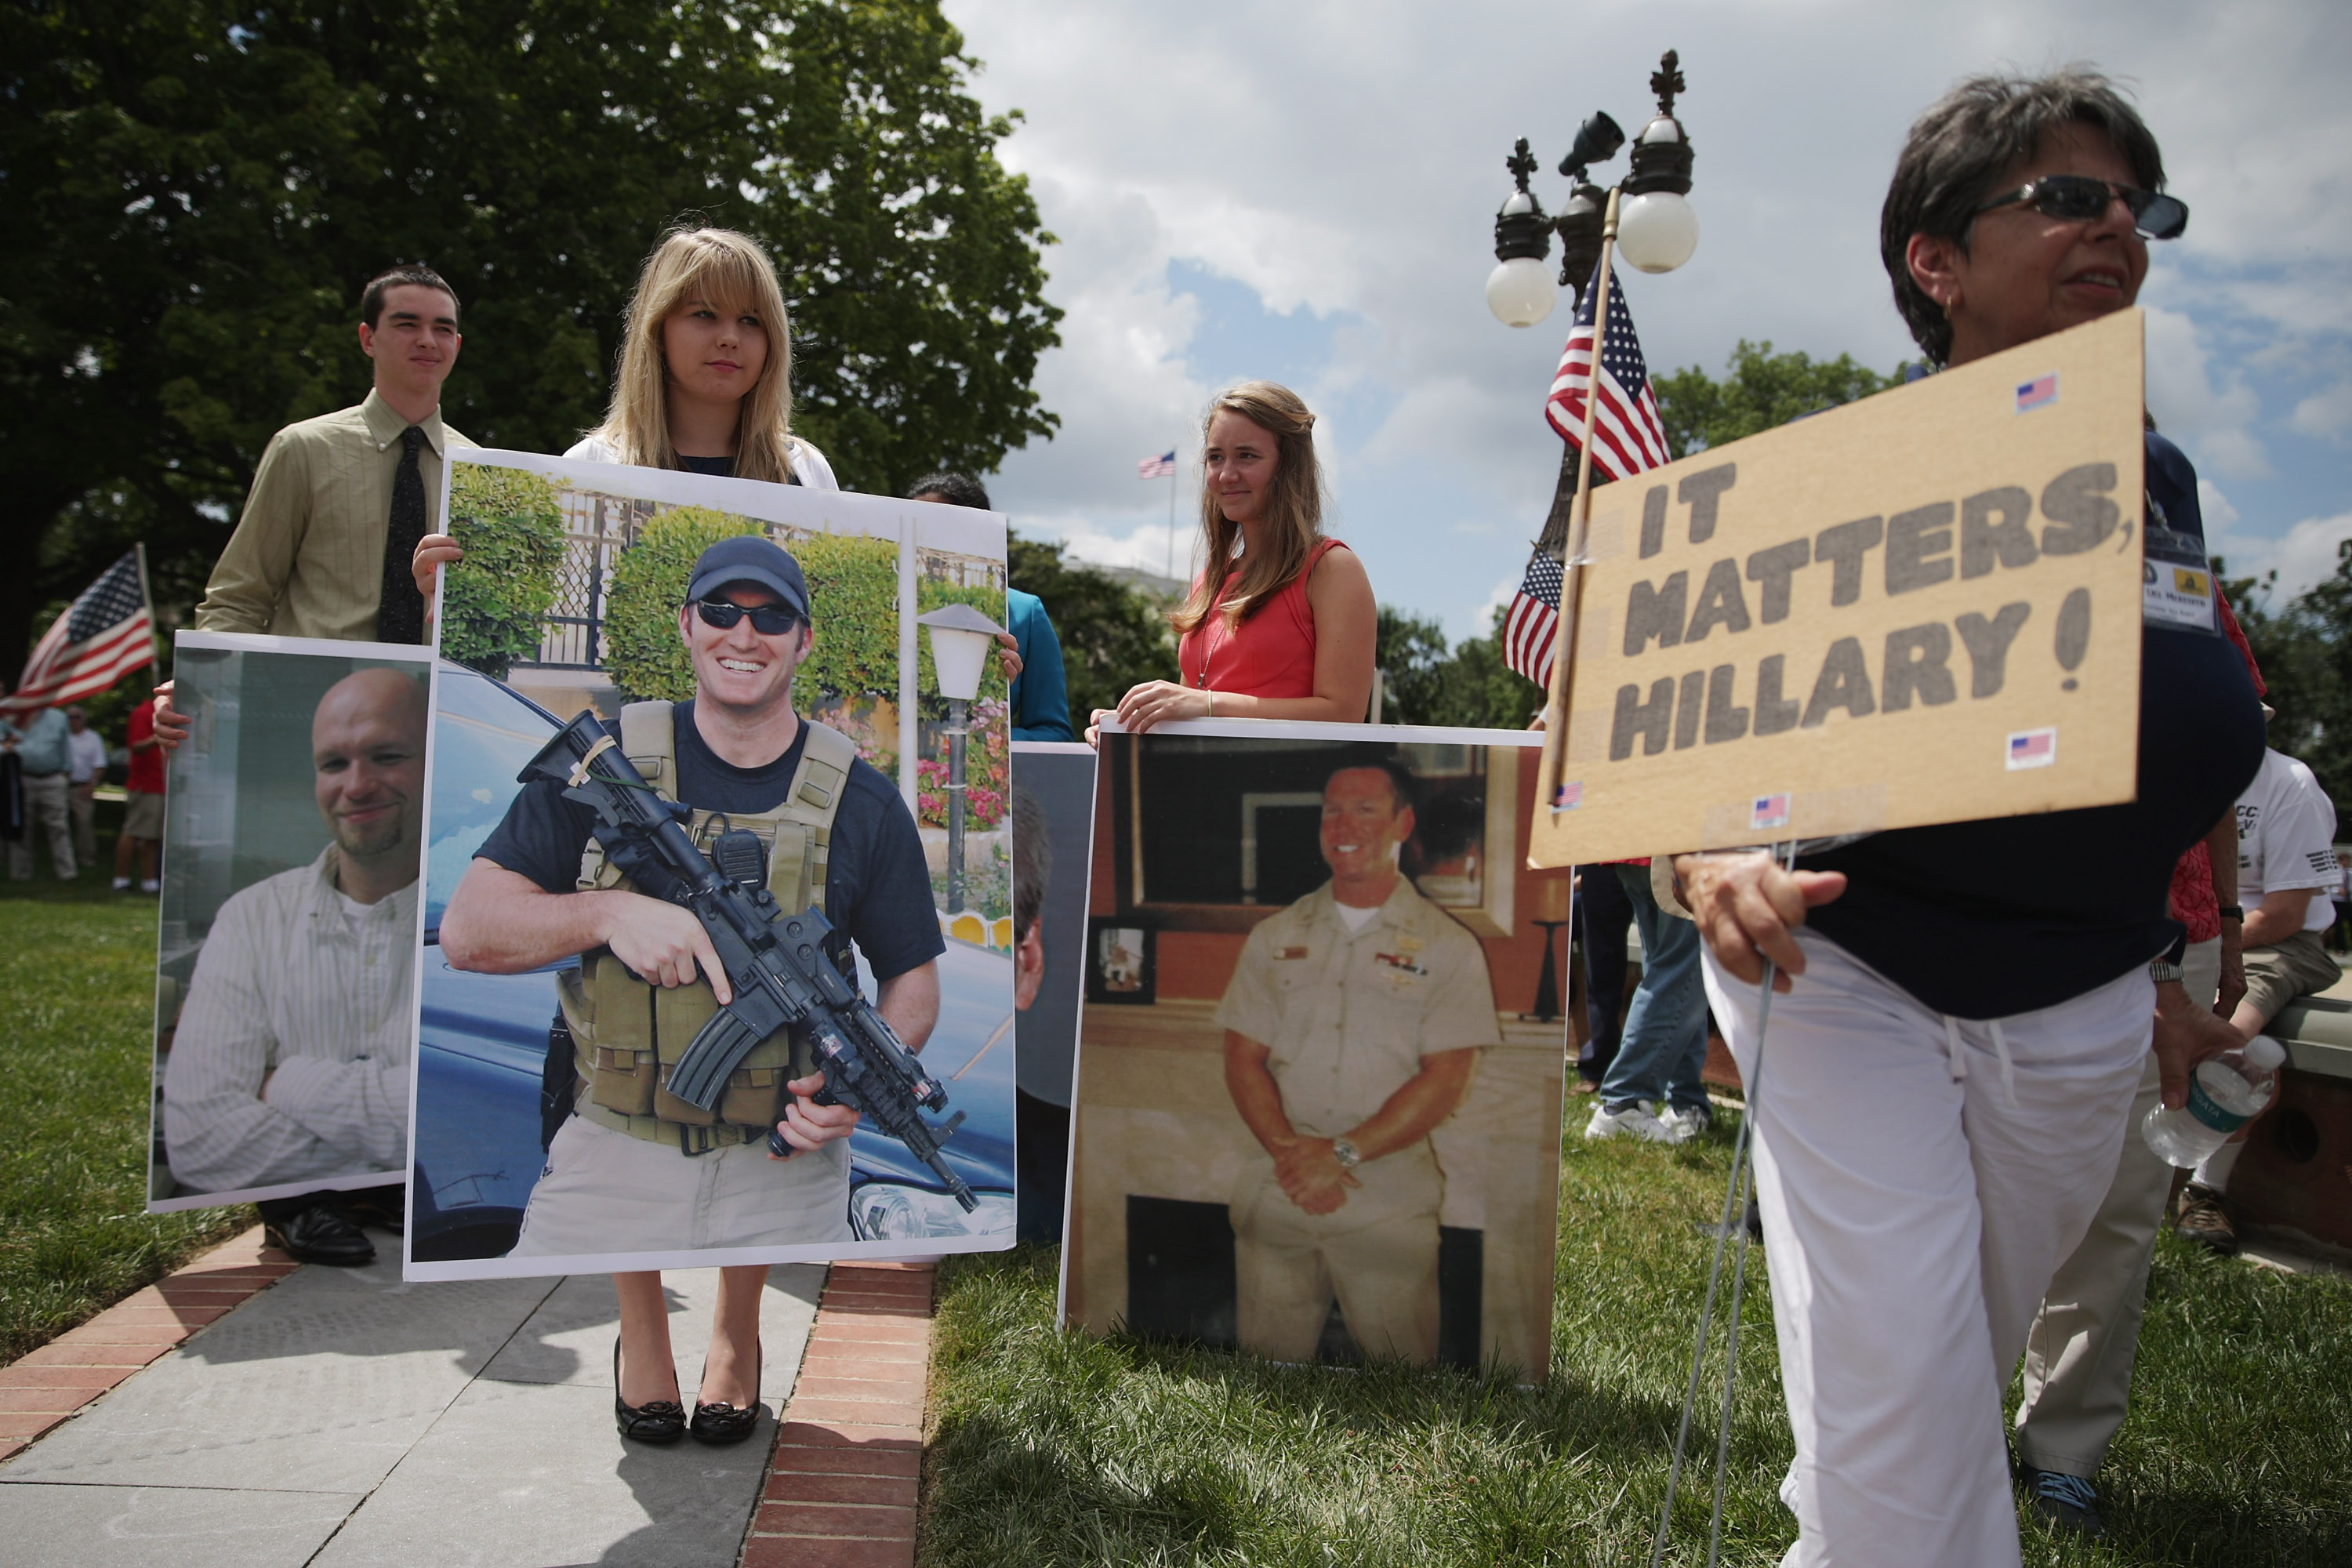 What Happened To Sean Smith In Benghazi? His Tragic Death Shouldn't Be  Exploited